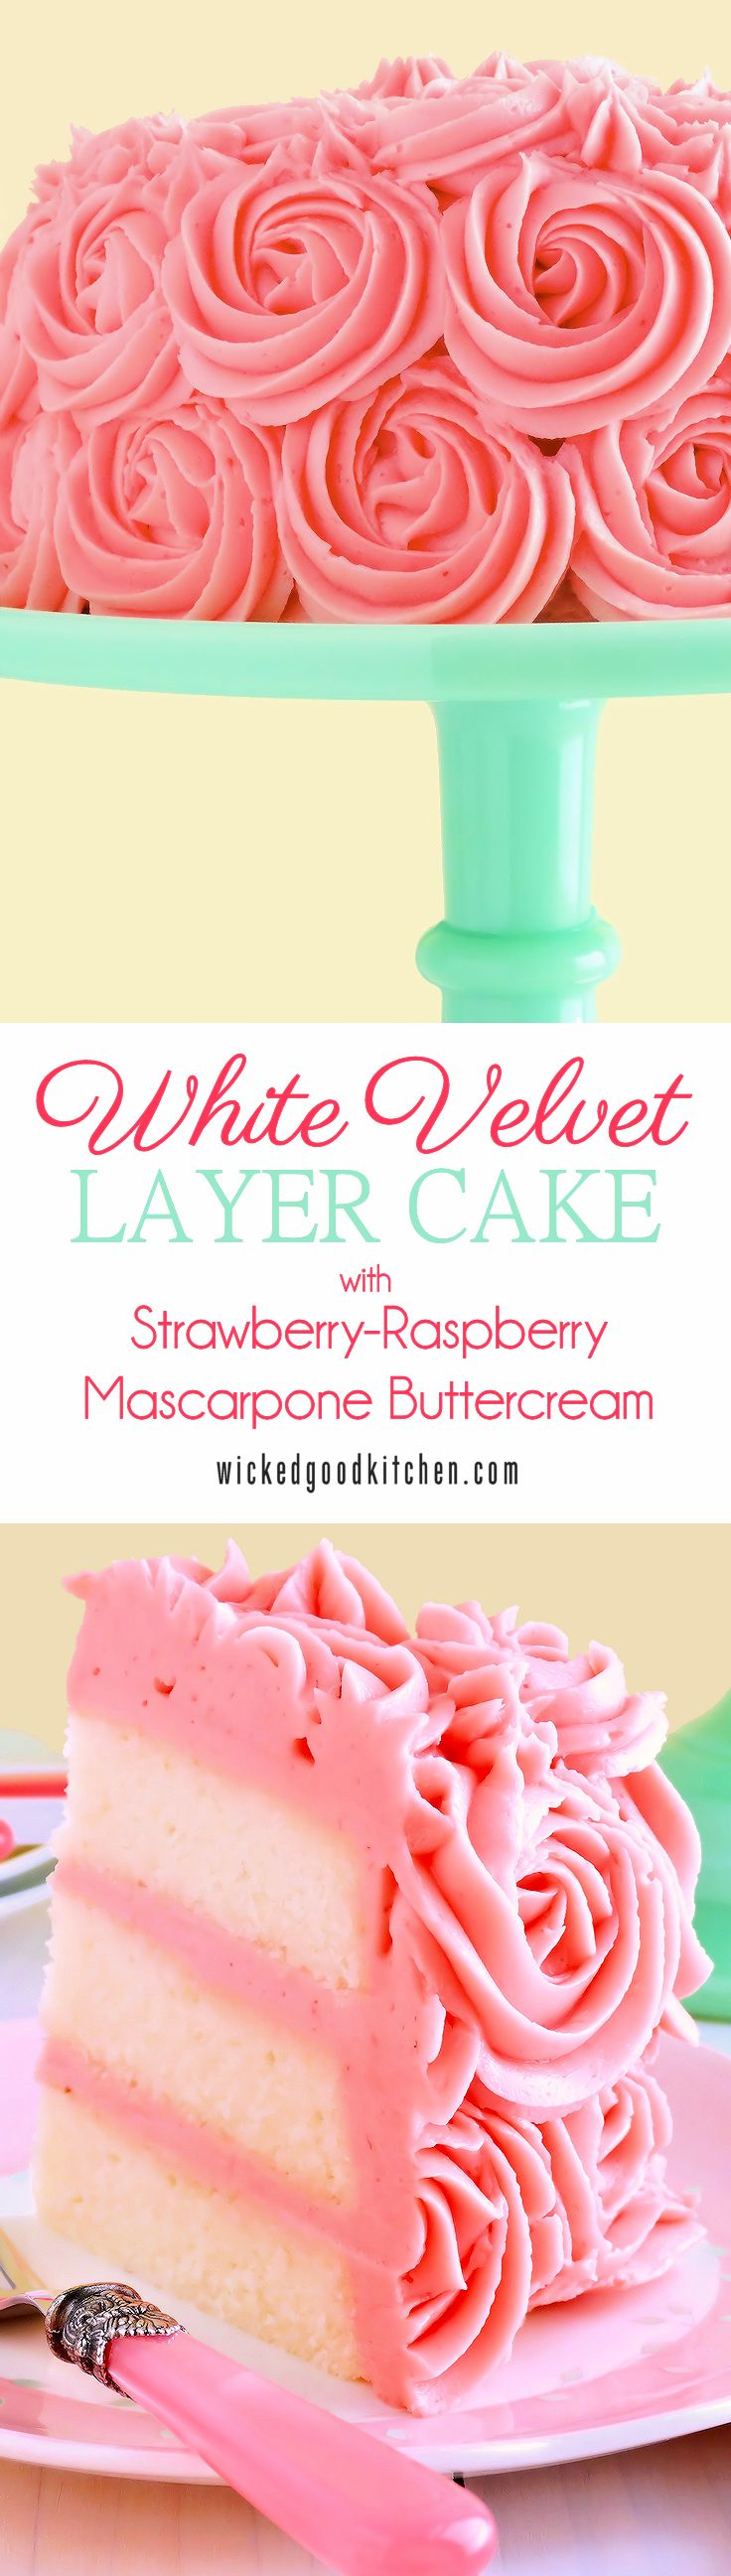 Moist, tender white cake reminiscent of its buttermilk cake cousin, Red Velvet Cake, our White Velvet Layer Cake is flavored with pure almond extract and a hint of vanilla. It is iced with a truly extraordinary frosting that tastes just like strawberry-raspberry cheesecake!